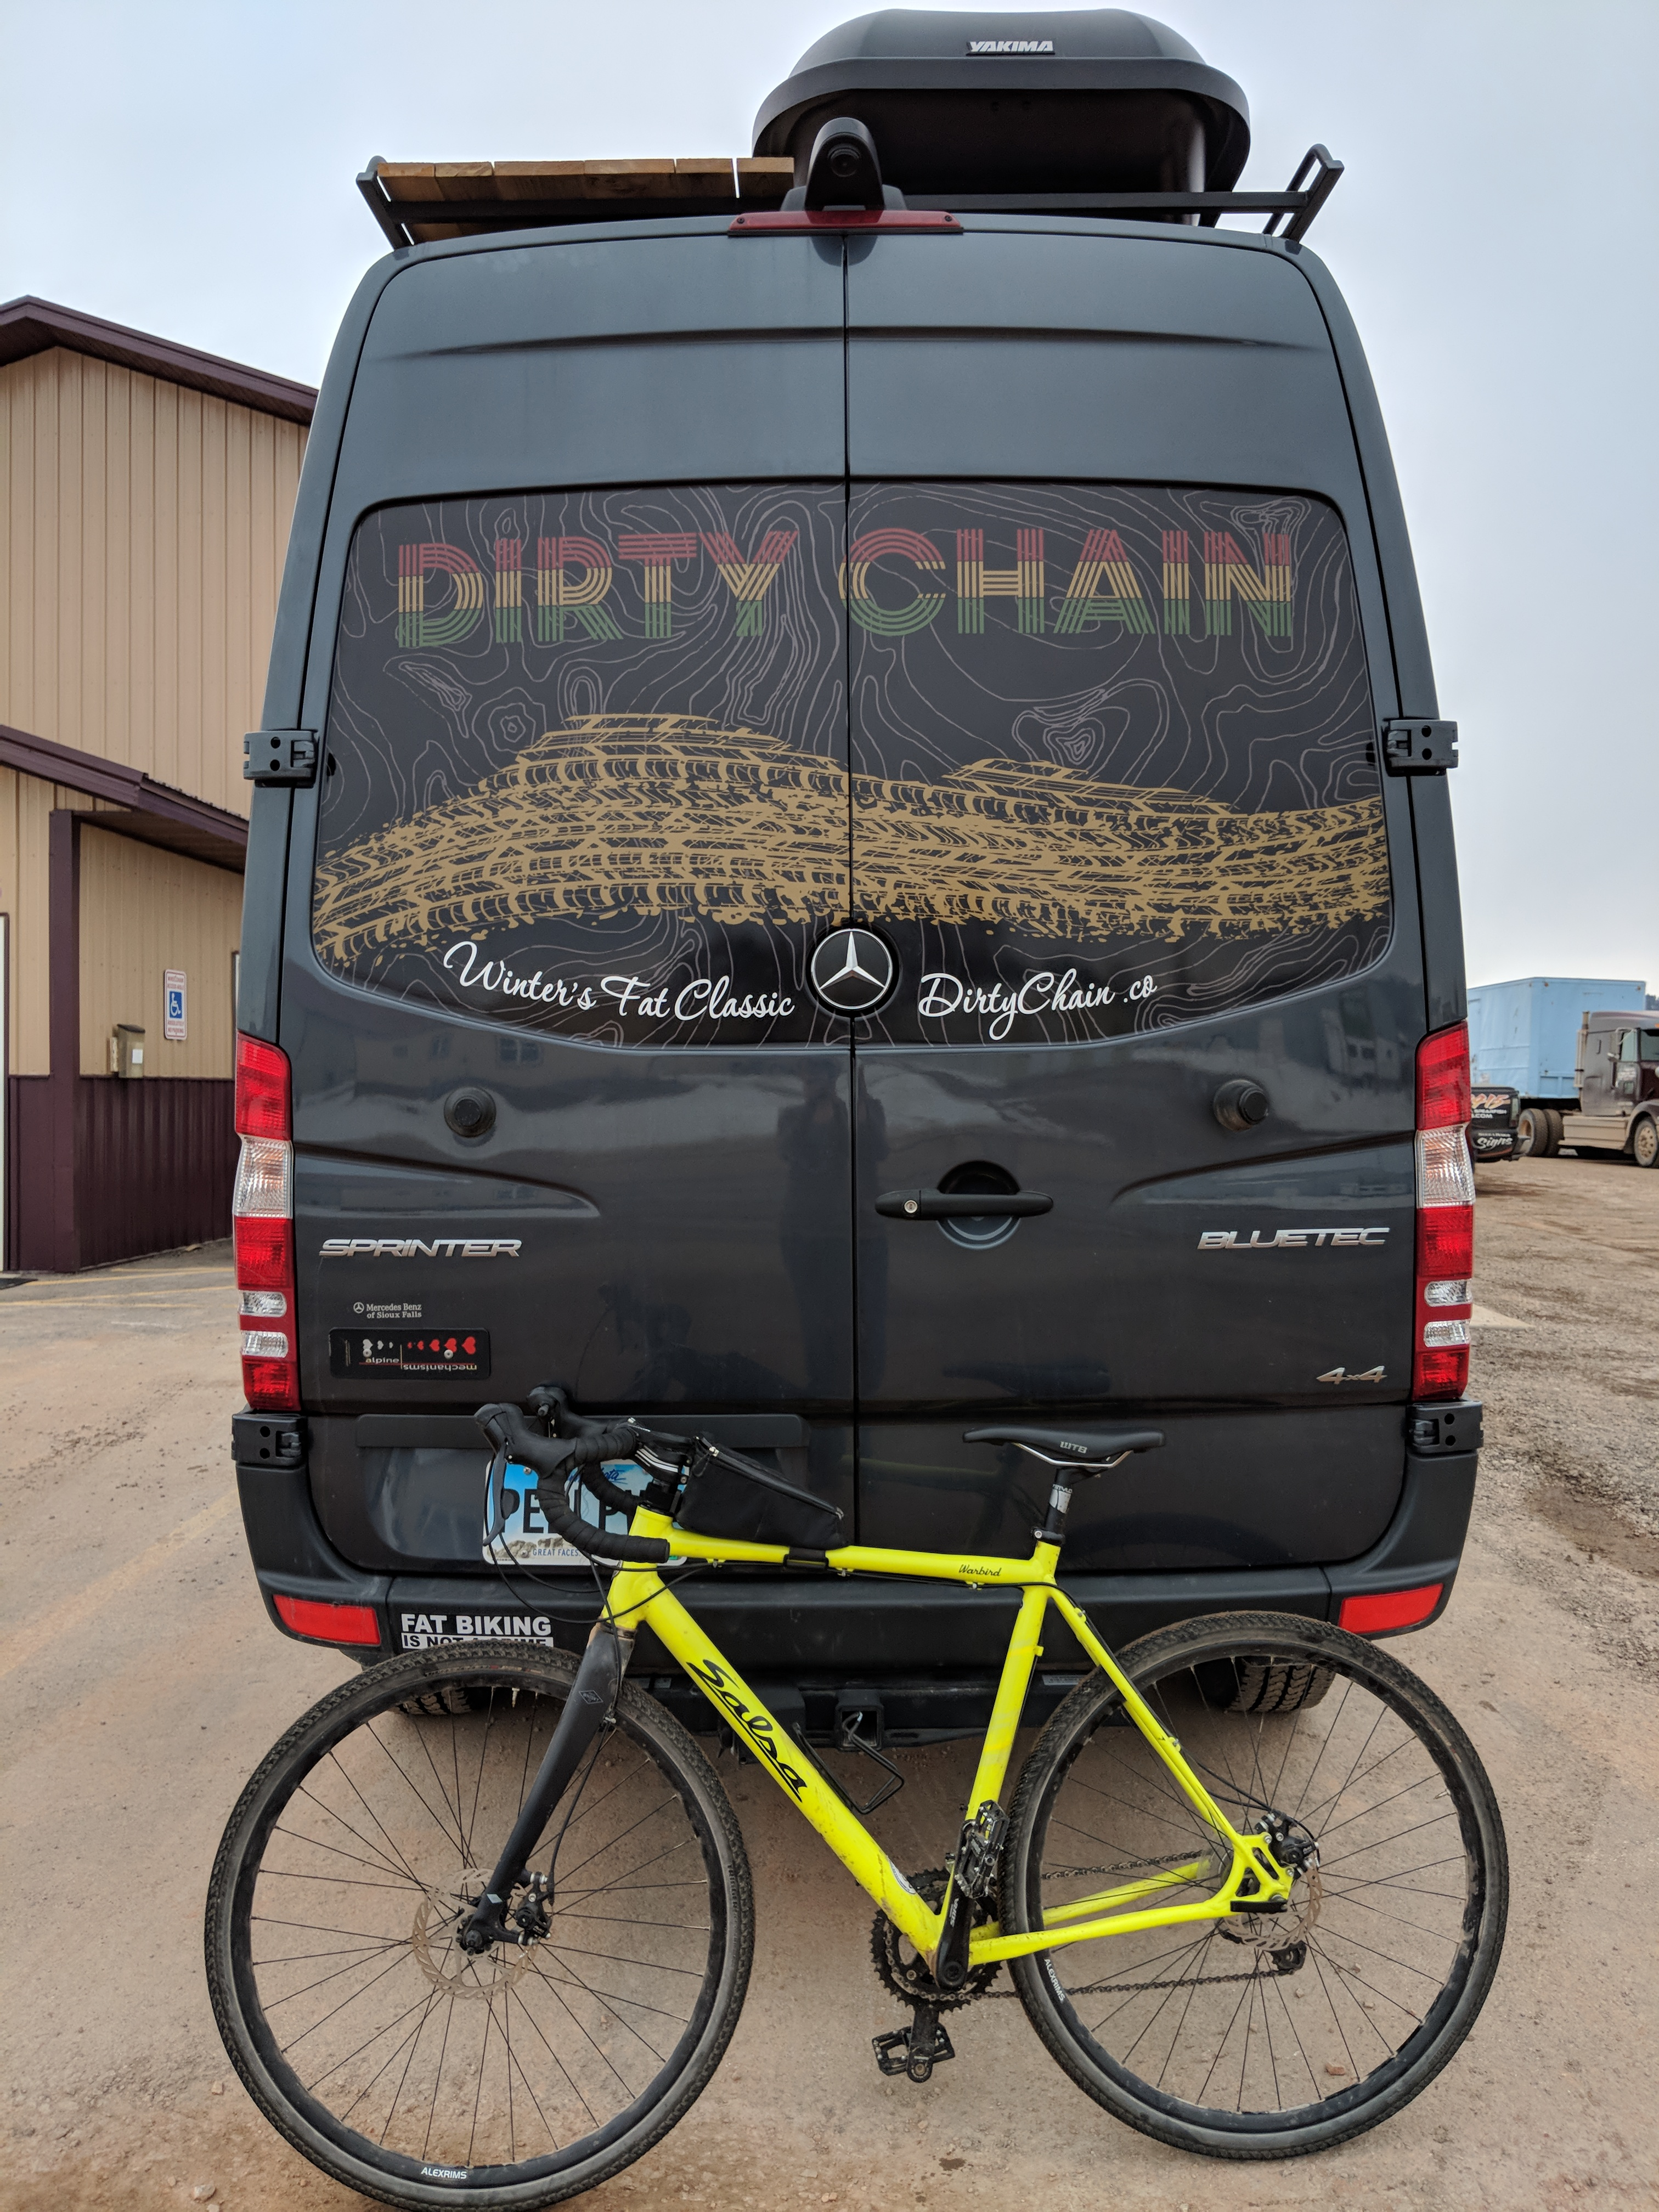 Dirty Chain